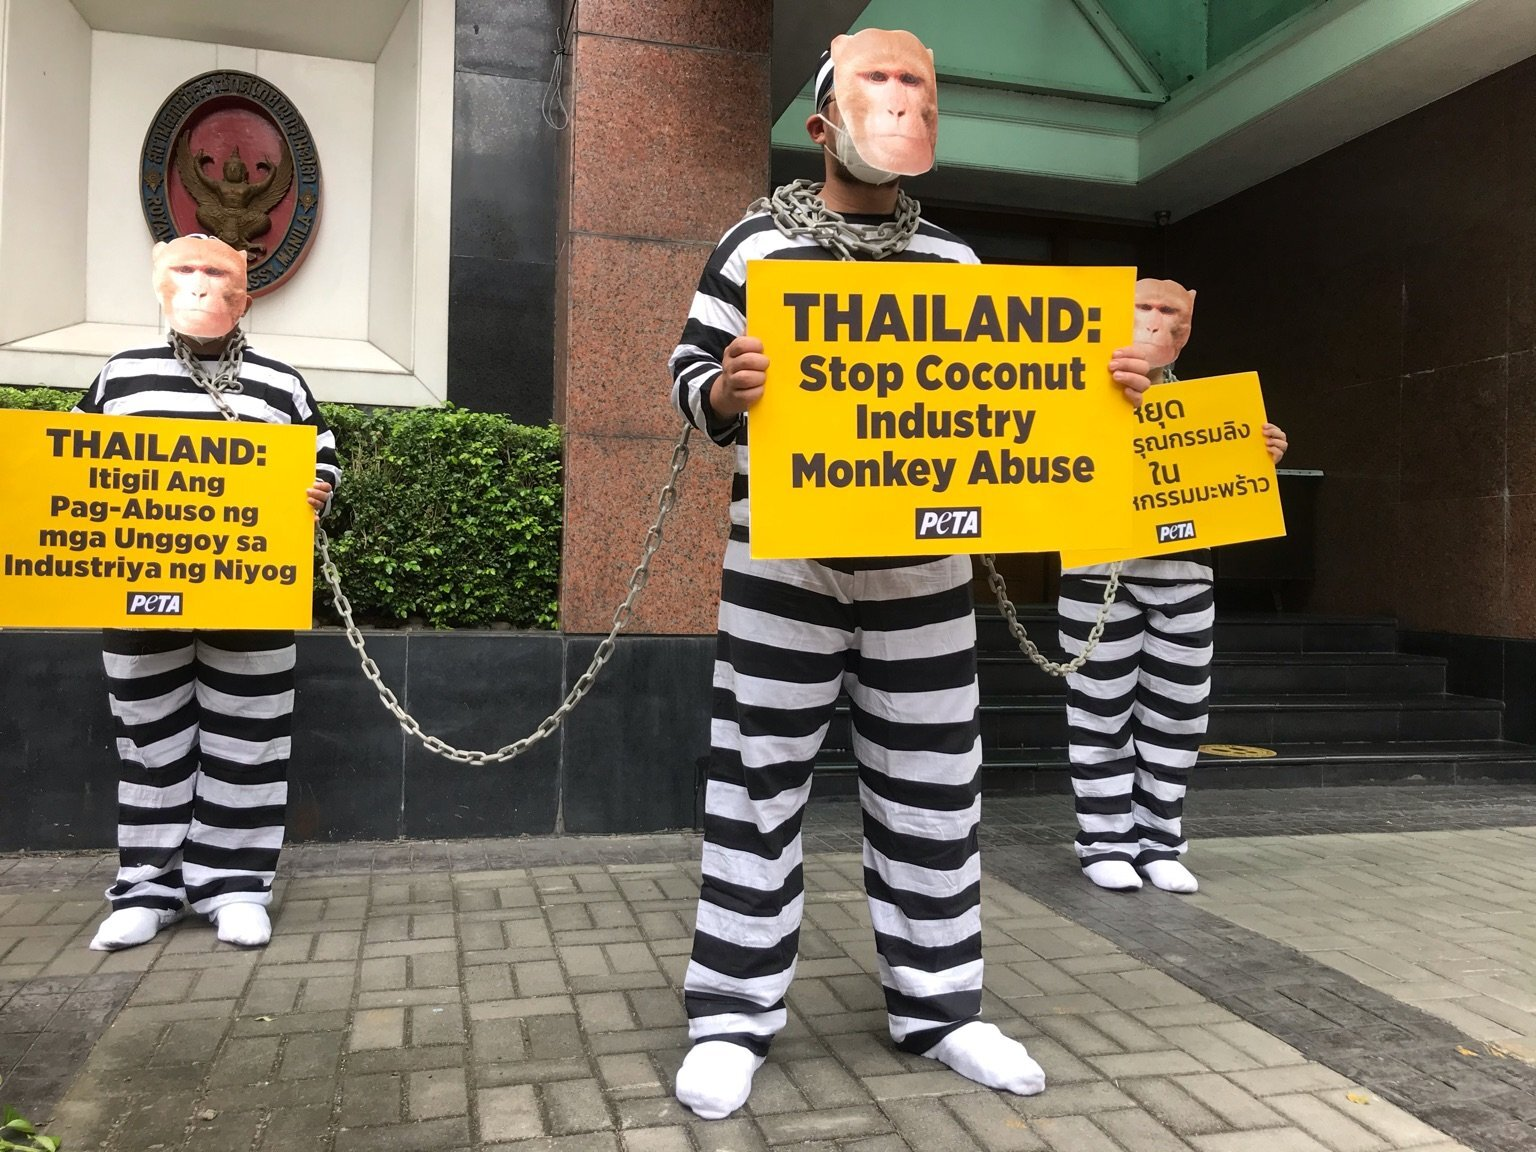 Photos: Chained 'Monkeys' Protest Thailand's Cruel Use of Monkeys for Coconut Milk